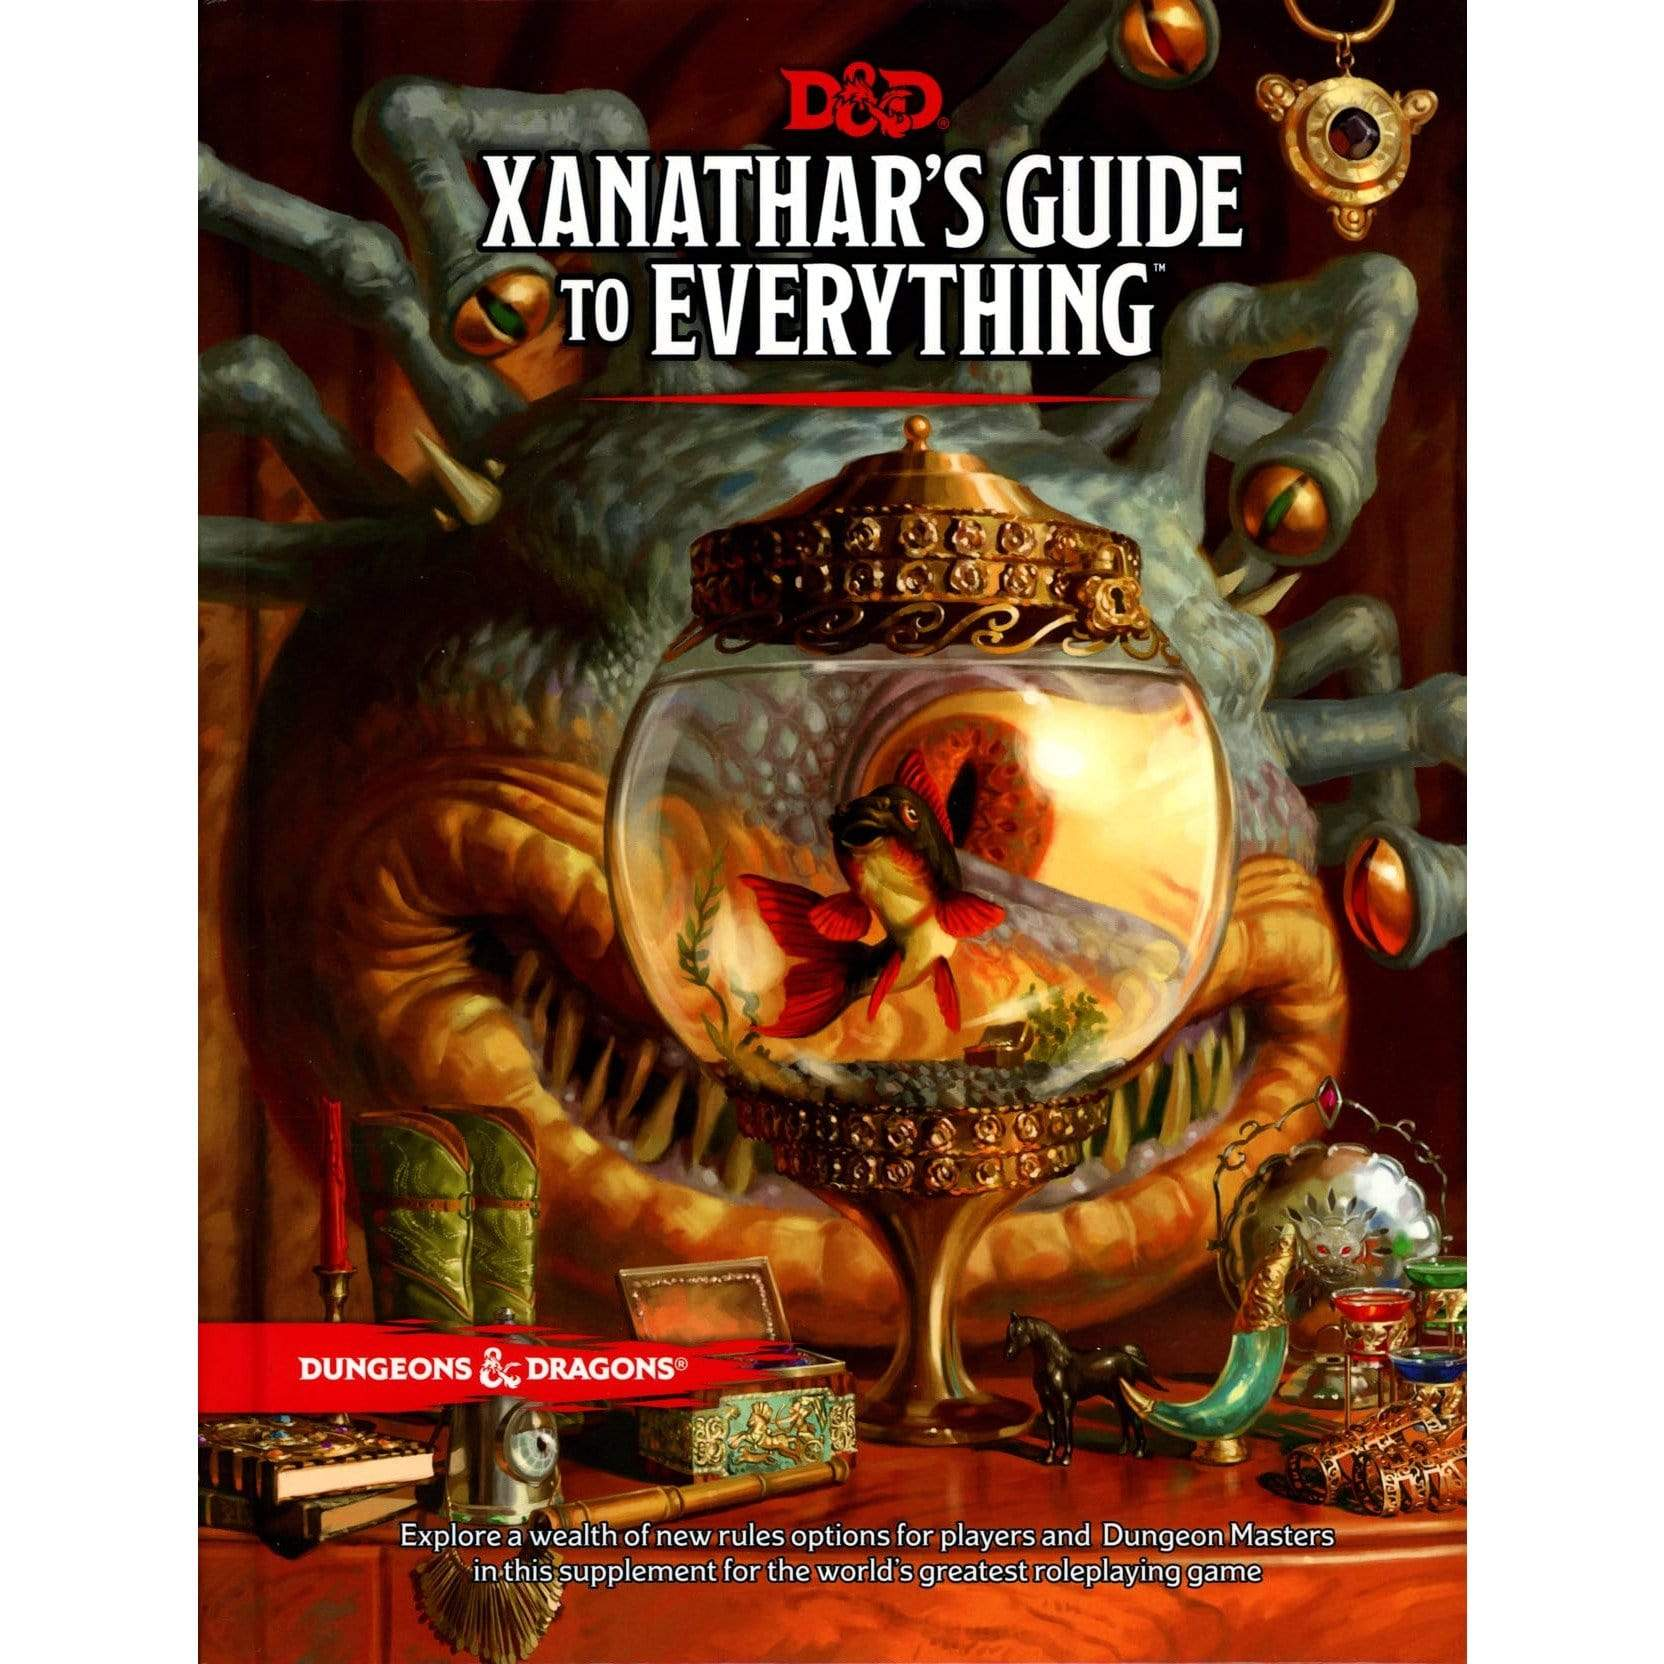 D&D: Xanathar's Guide To Everything Wizards of the Coast Board Games